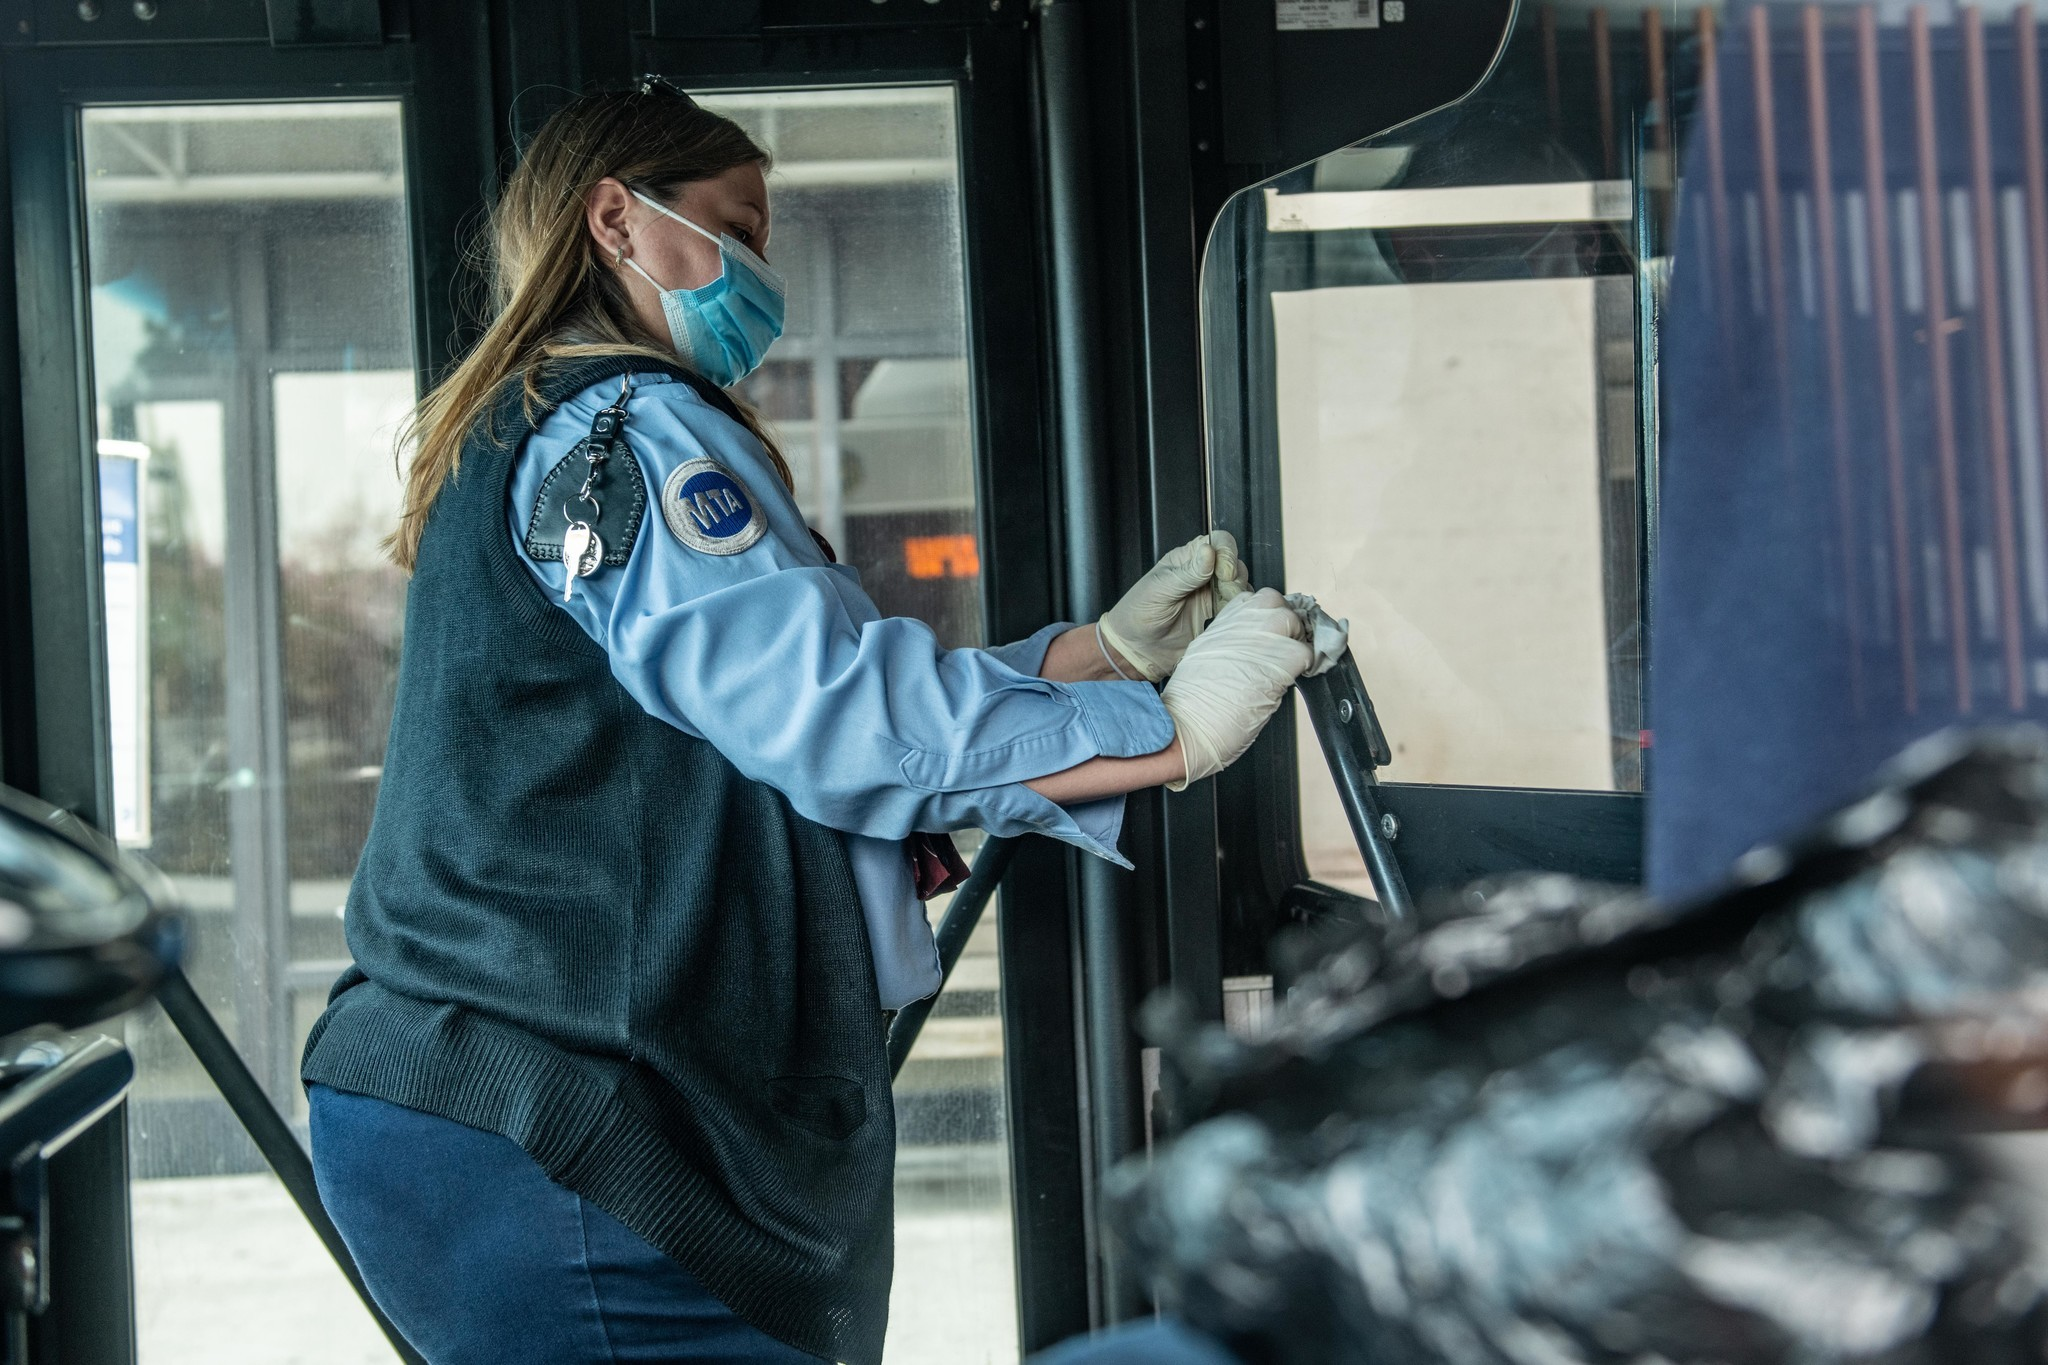 NYC transit workers to receive nearly 250,000 N95 masks to protect against coronavirus